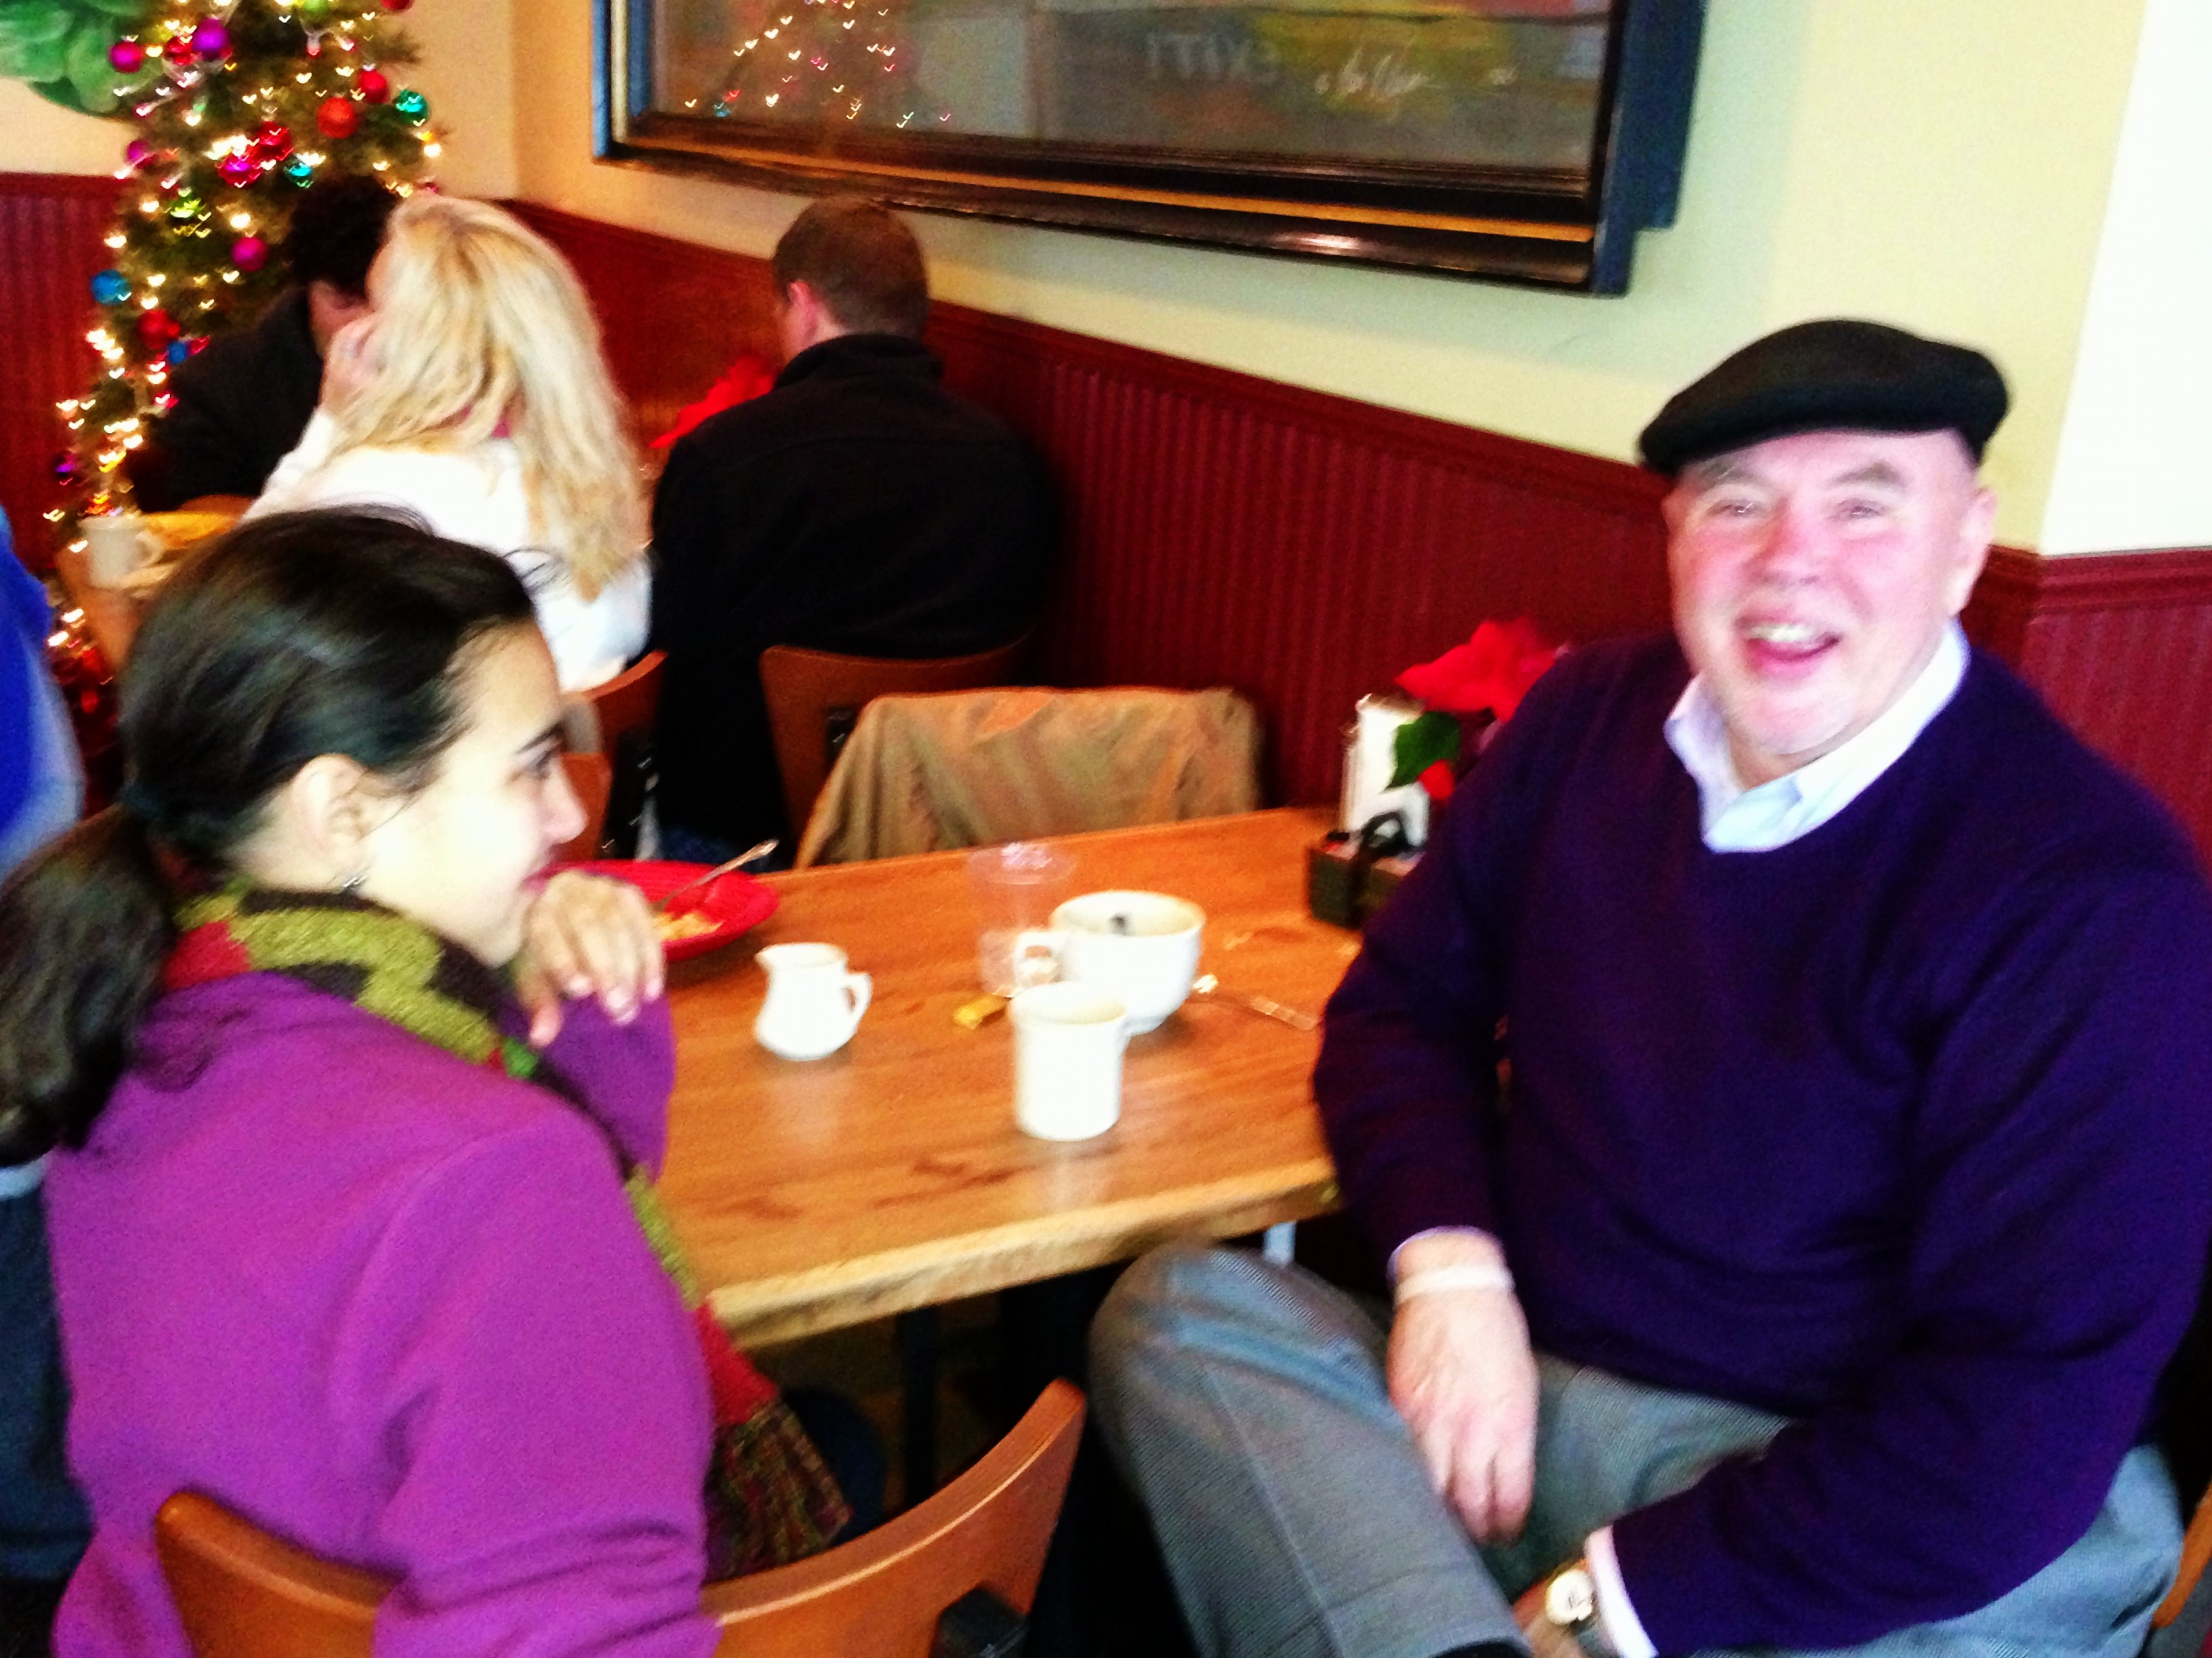 Michael & Maria from Edmonds, WashingtonLoyal regulars smiling through the day!